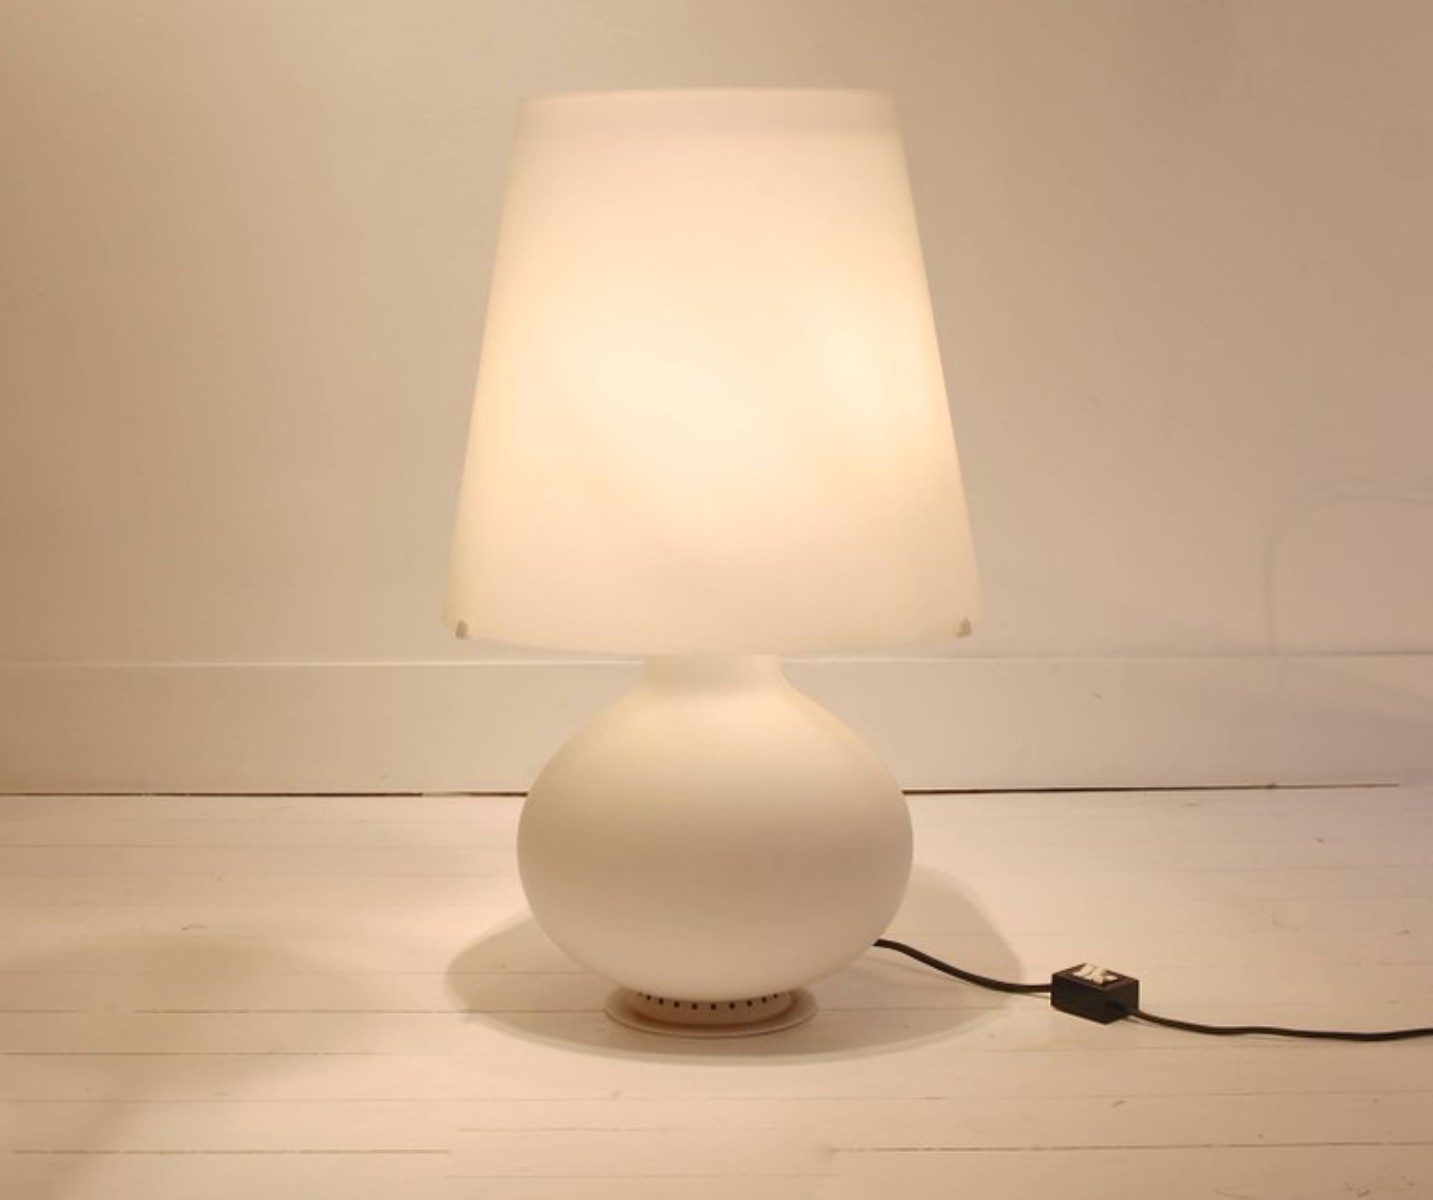 Fontana White Frosted Glass Table Lamp By Max Ingrand For Fontana